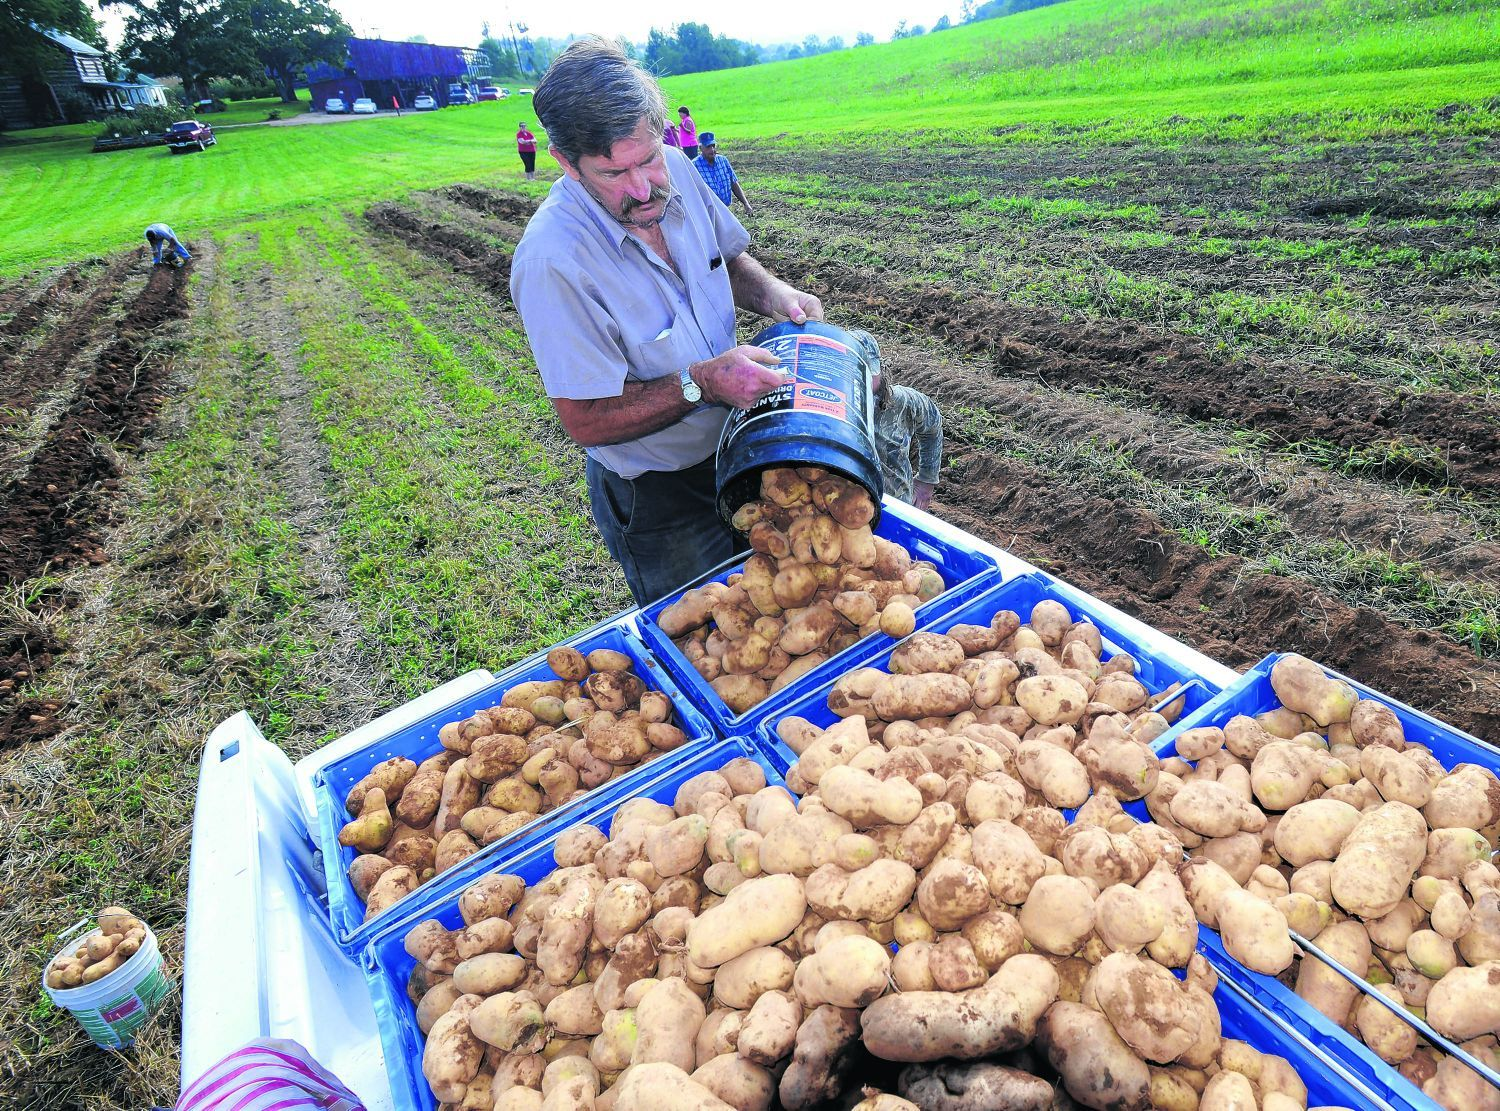 Inspiring A Pound How Many Potatoes Glade Tractor Association Potatoes Tractor Association Donating Nearly Pounds Potatoes How Many Idaho Potatoes A 5 Pound Bag houzz 01 How Many Potatoes In A Pound